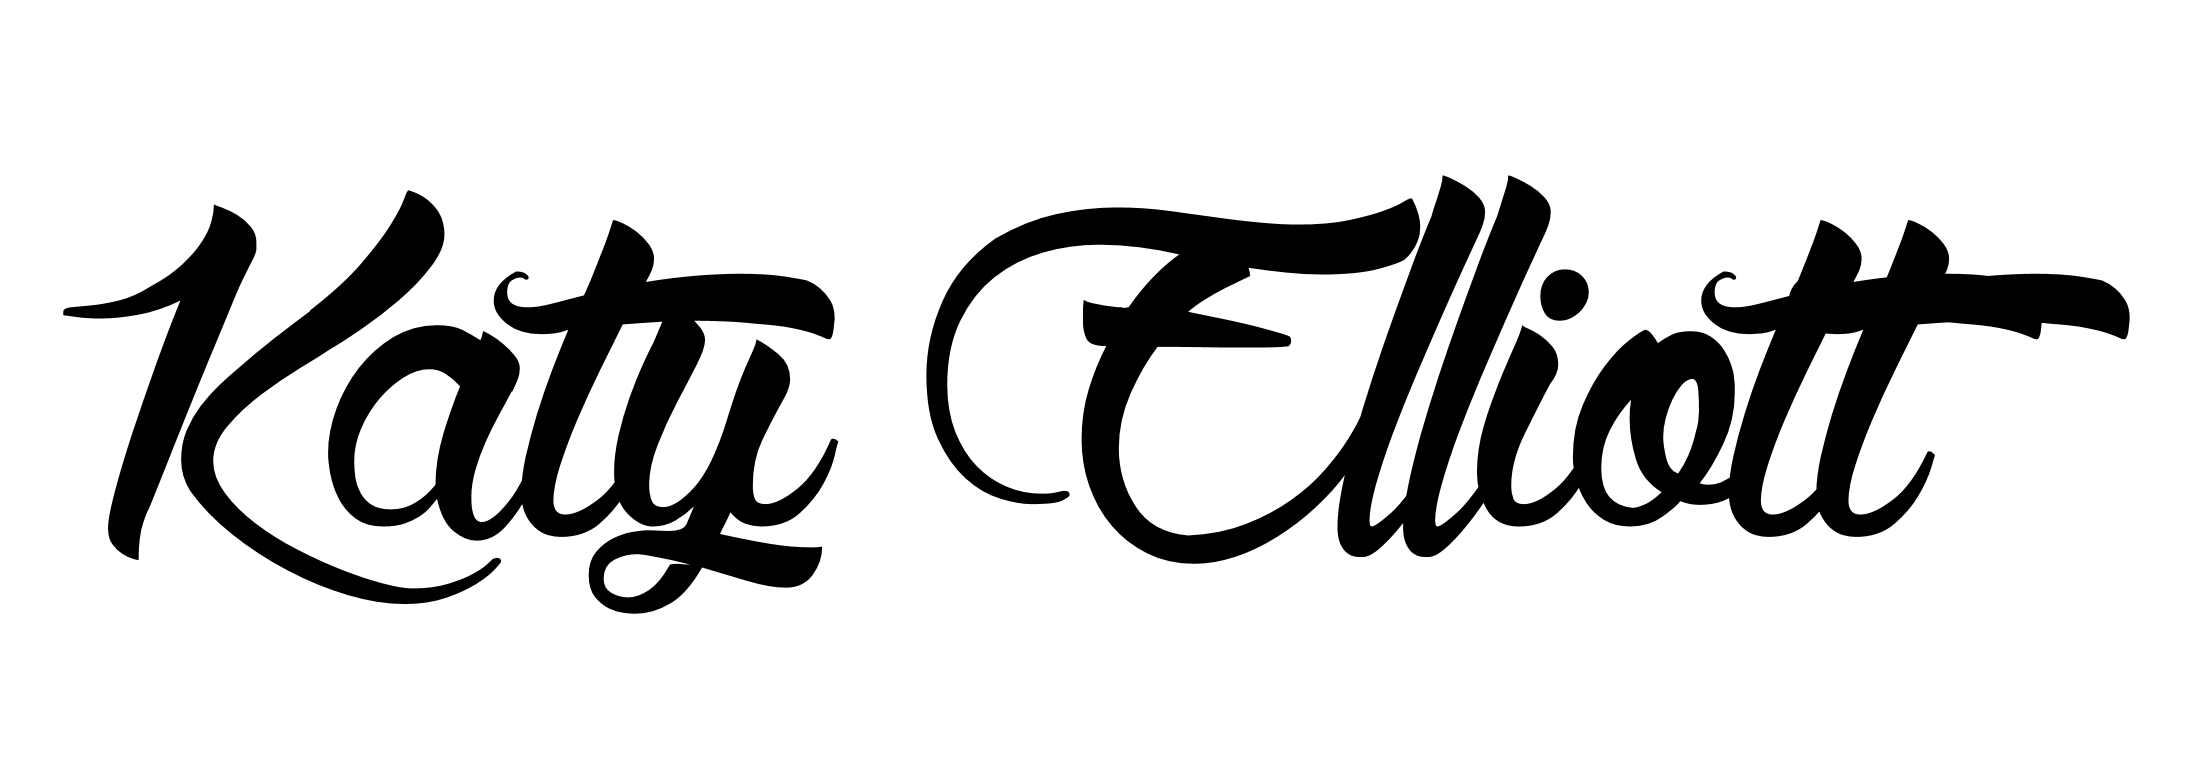 katy elliott Signature